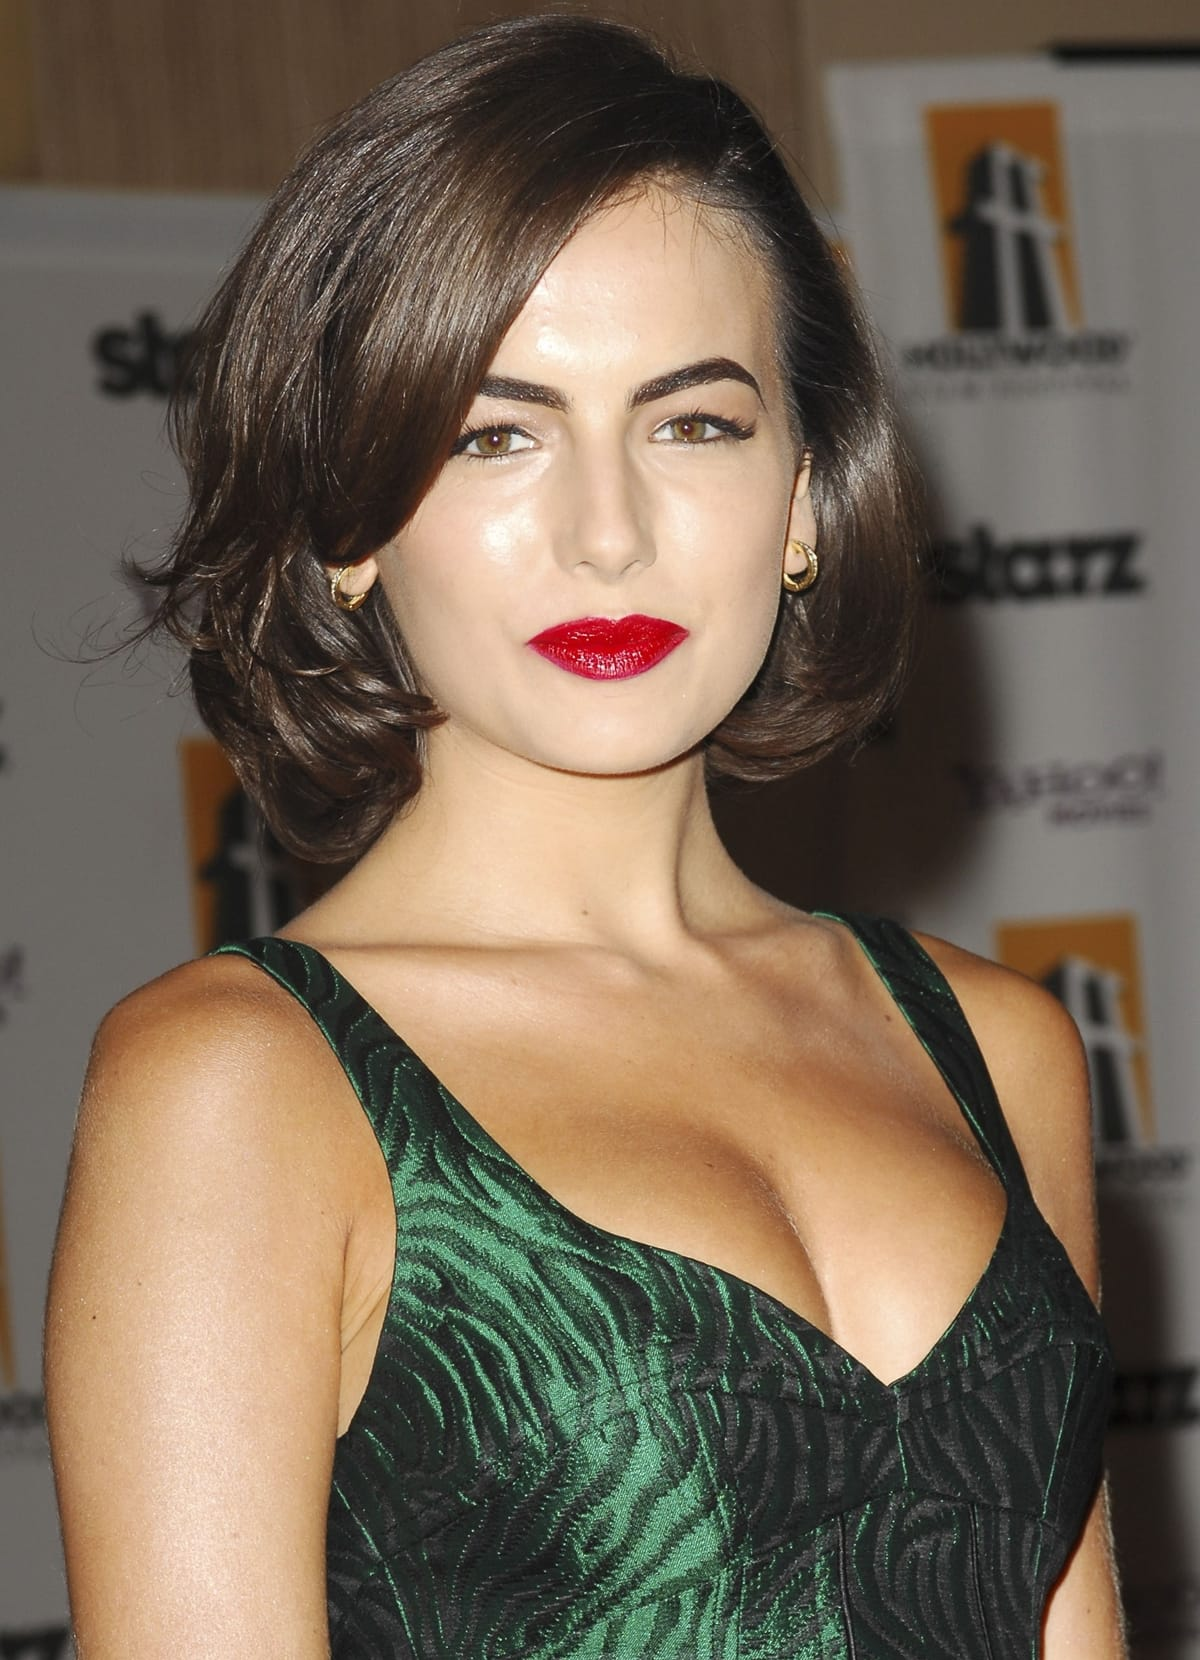 Best known for her role as D'Leh's wife Evolet in the Roland Emmerich-directed big-budget film 10,000 BC, Camilla Belle is an American actress, director, and producer